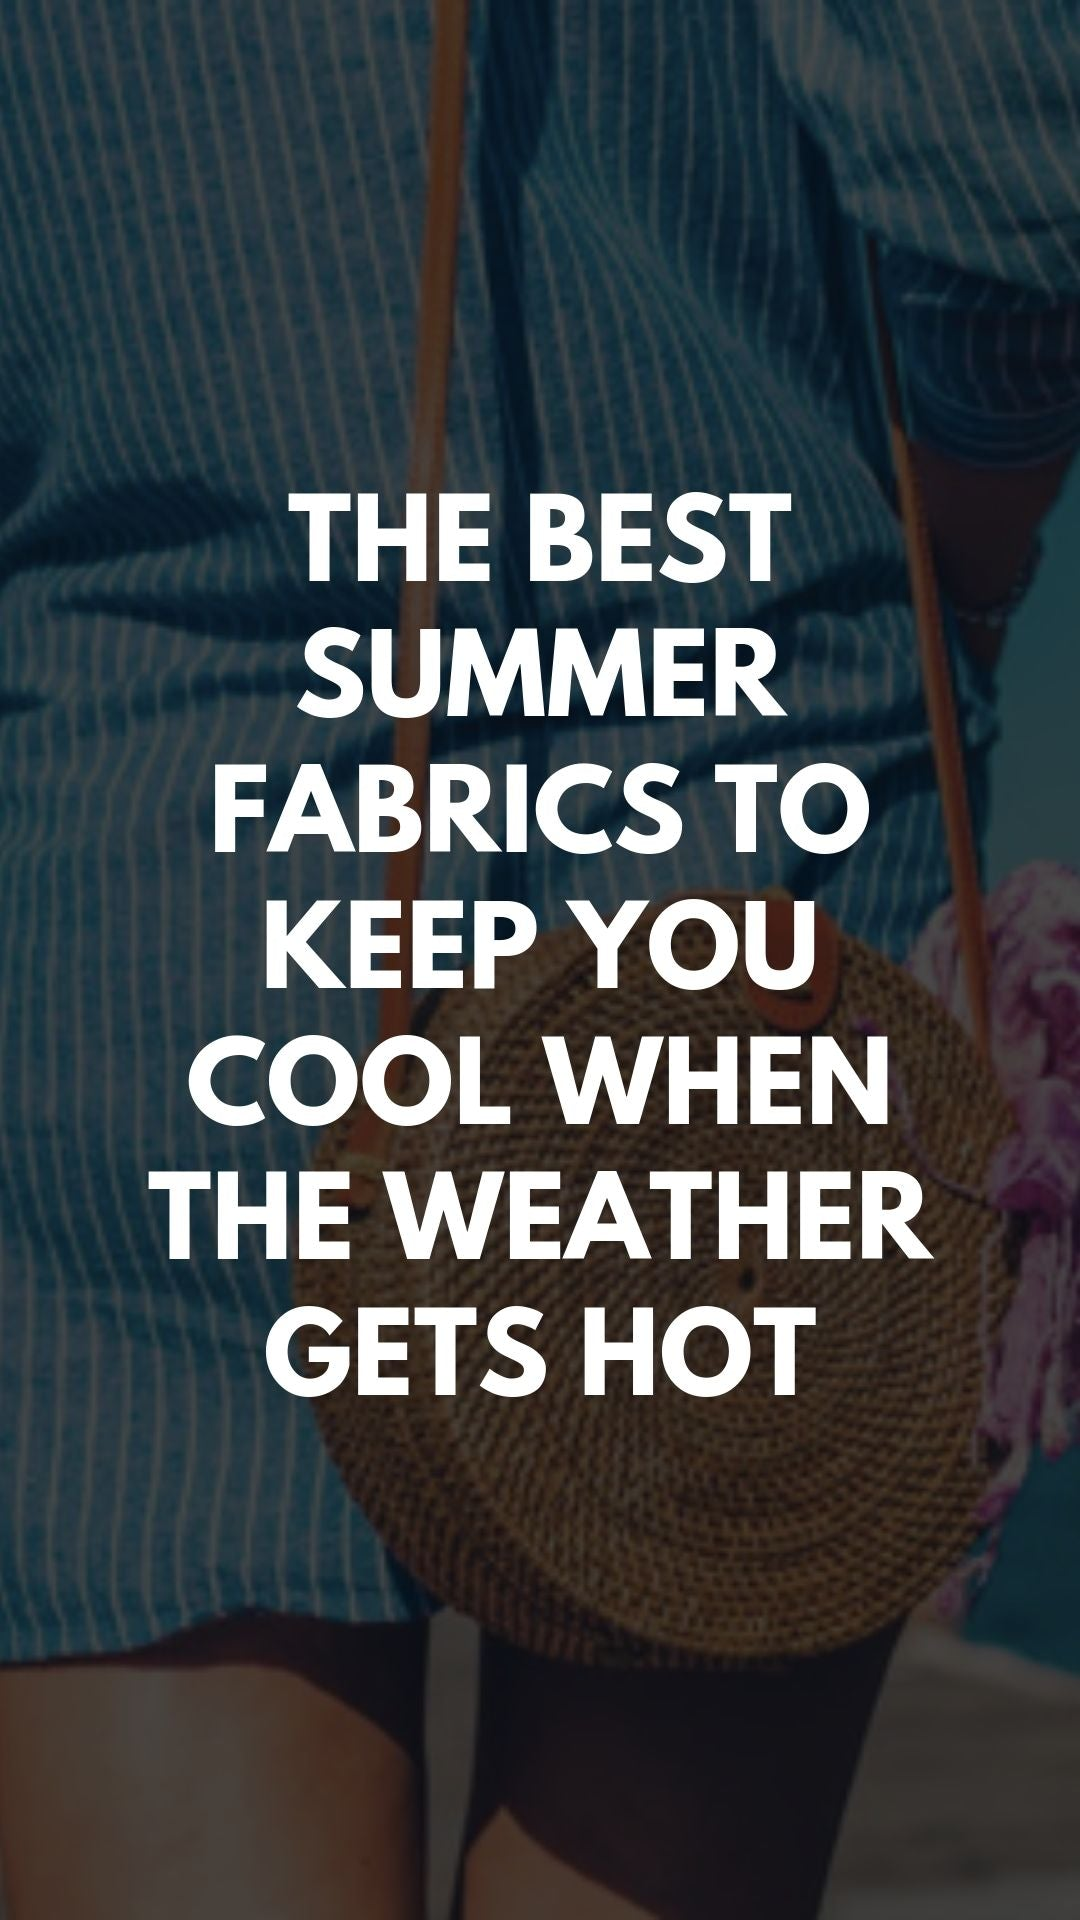 The Best Summer Fabrics to Keep You Cool When the Weather Gets Hot